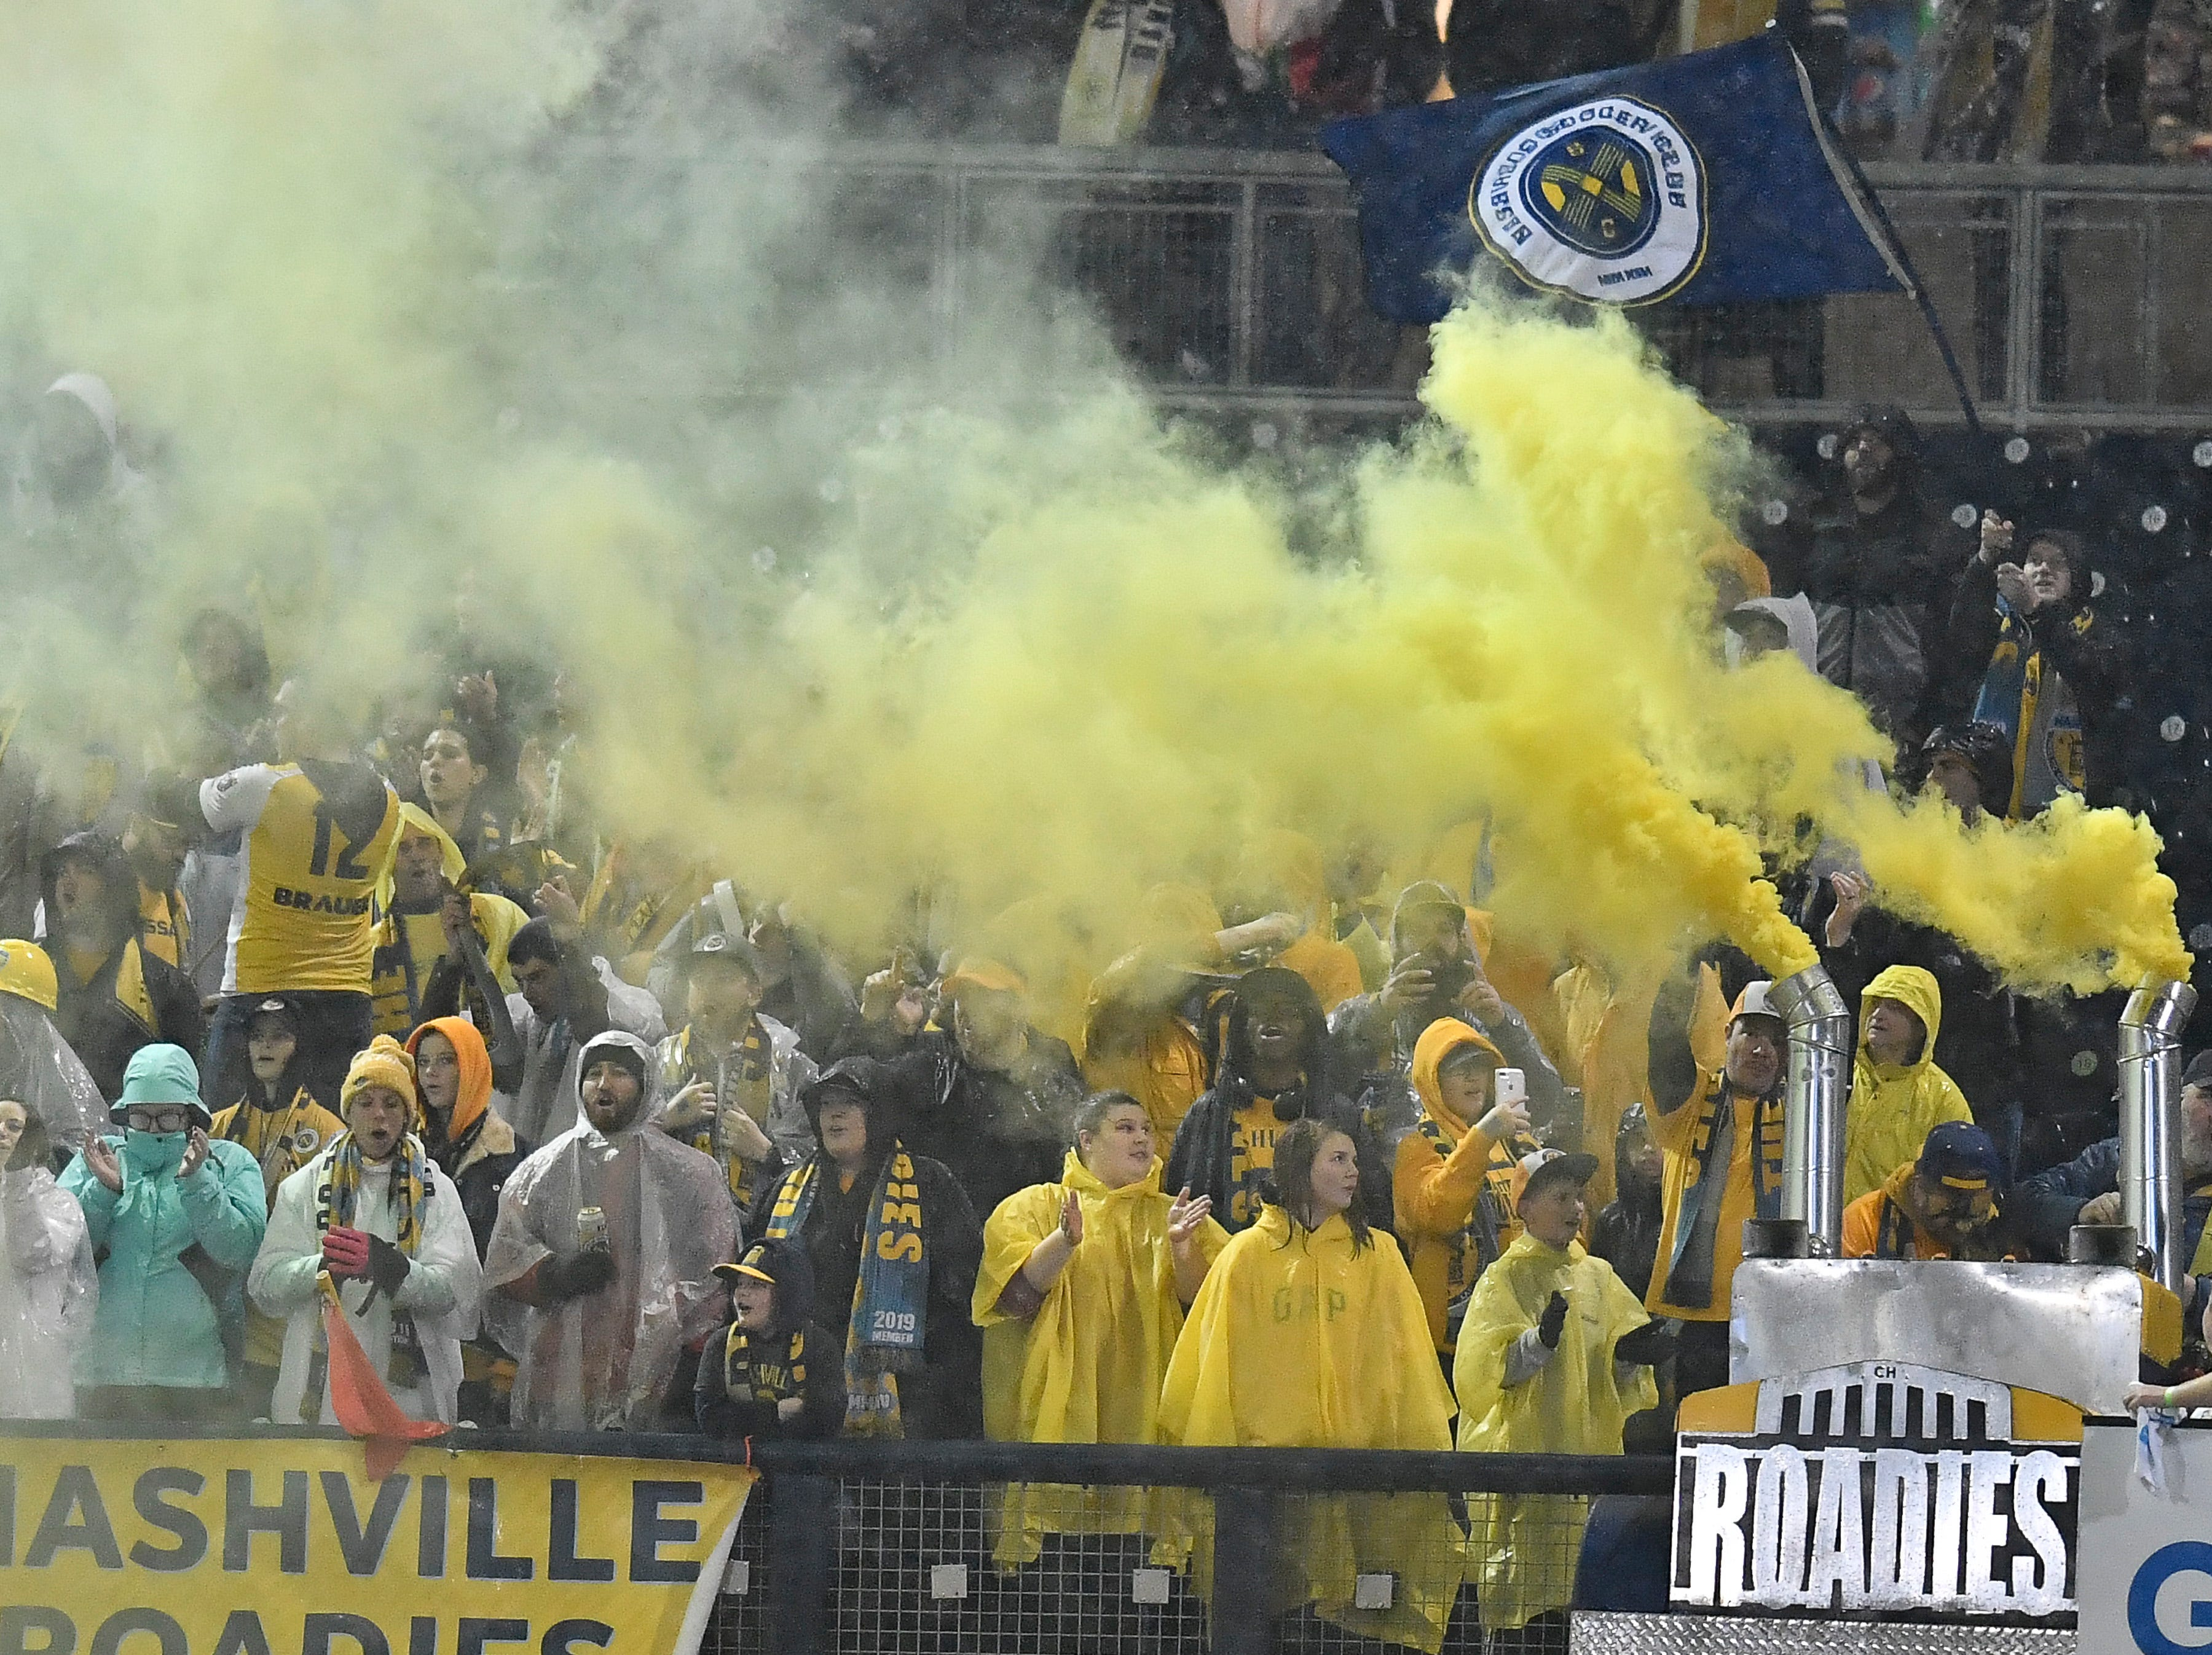 Nashville SC supporters group The Roadies cheer for their team during the first half of their preseason match against New York City FC at First Tennessee Park Friday, Feb. 22, 2019 in Nashville, Tenn.